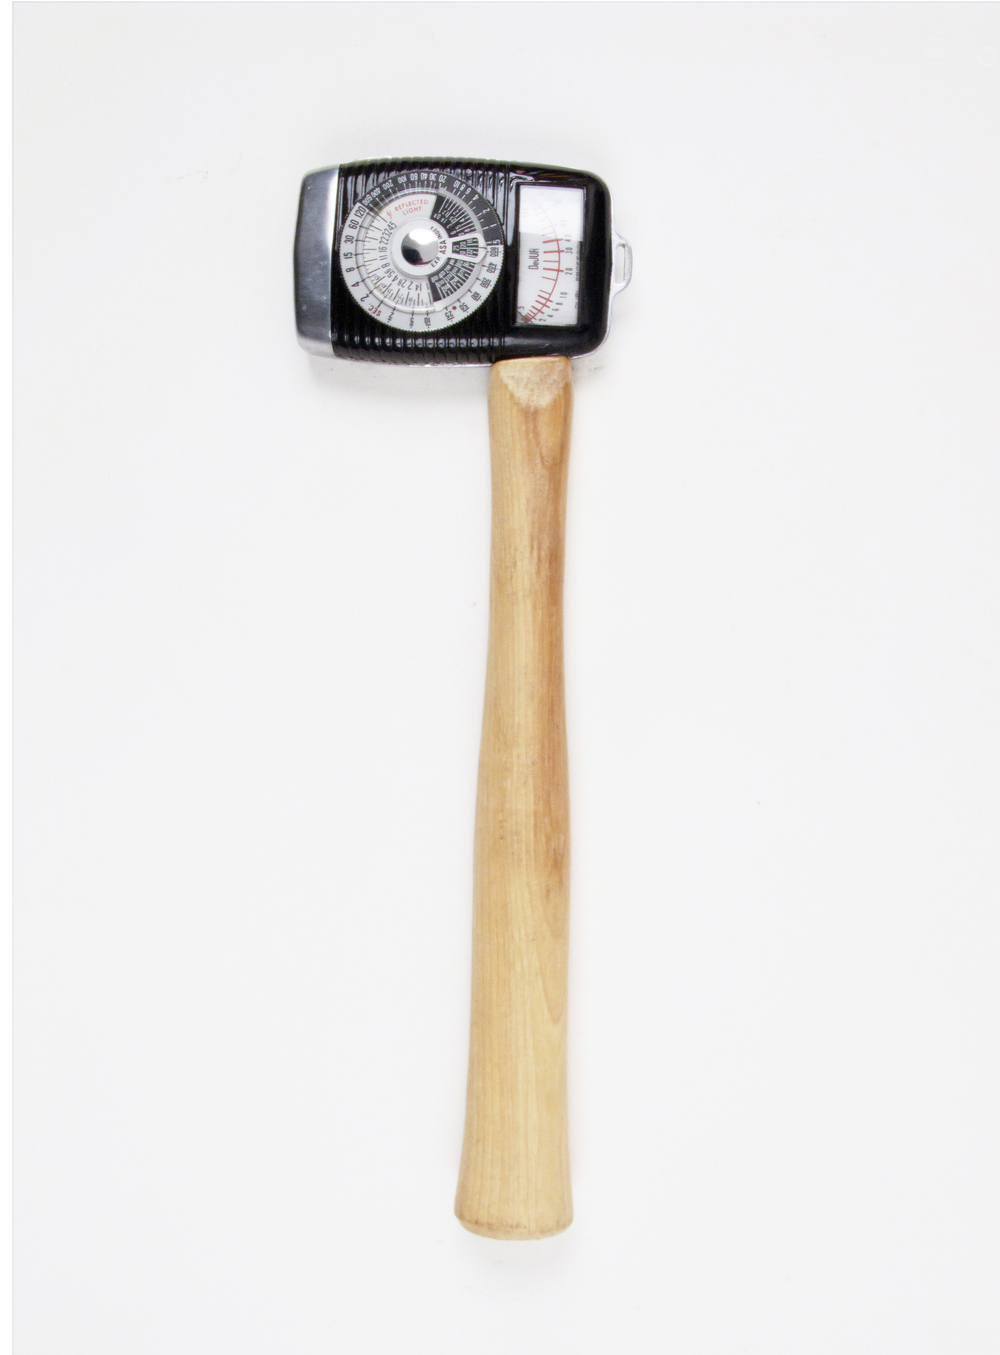 Light Meter Hammer.jpg